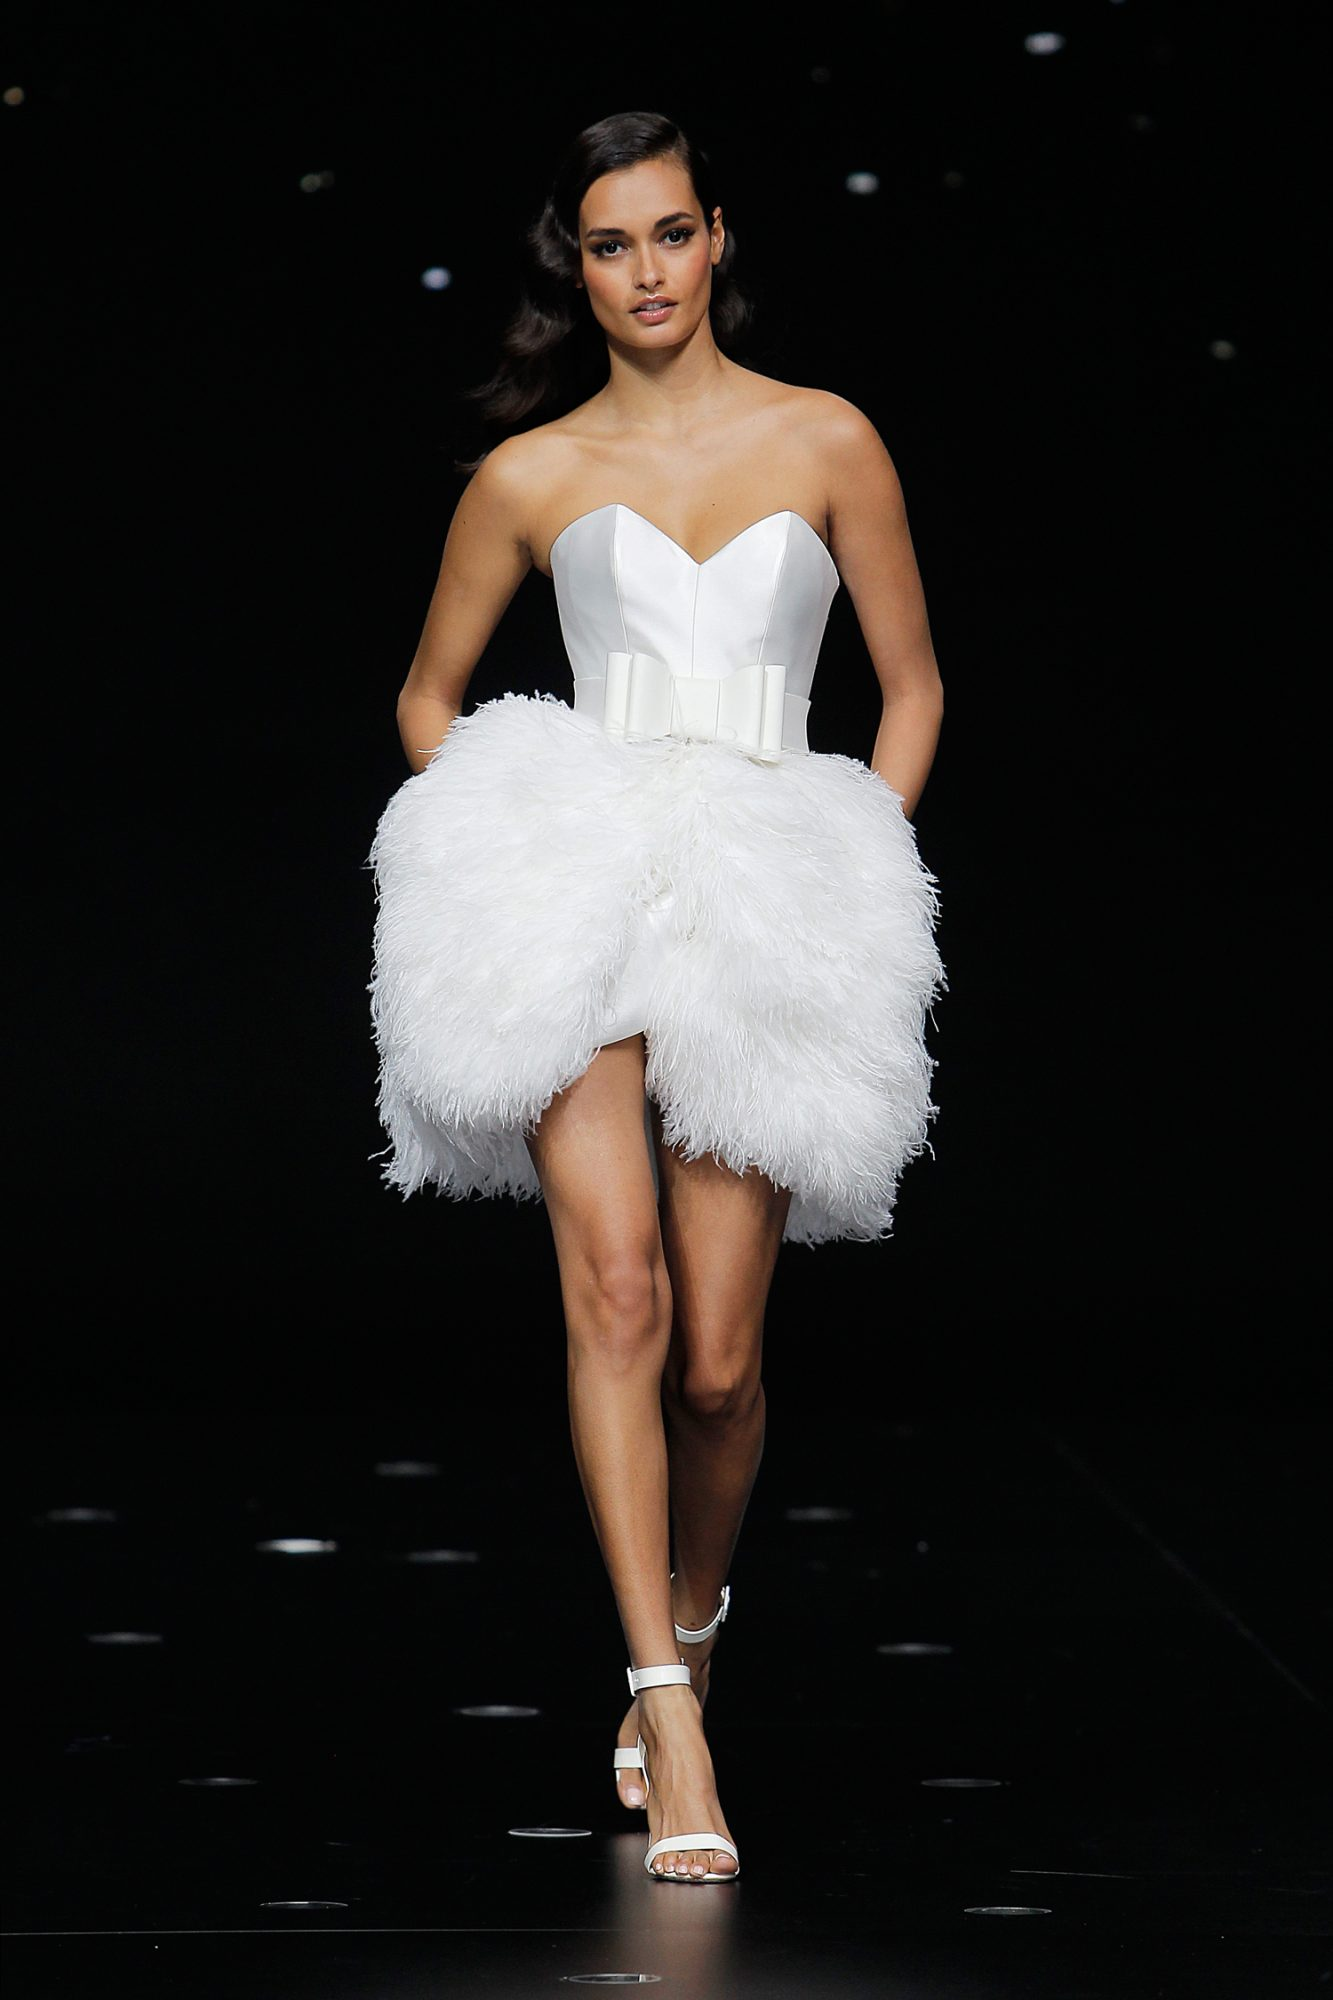 pronovias strapless short wedding dress with feathered skirt spring 2020